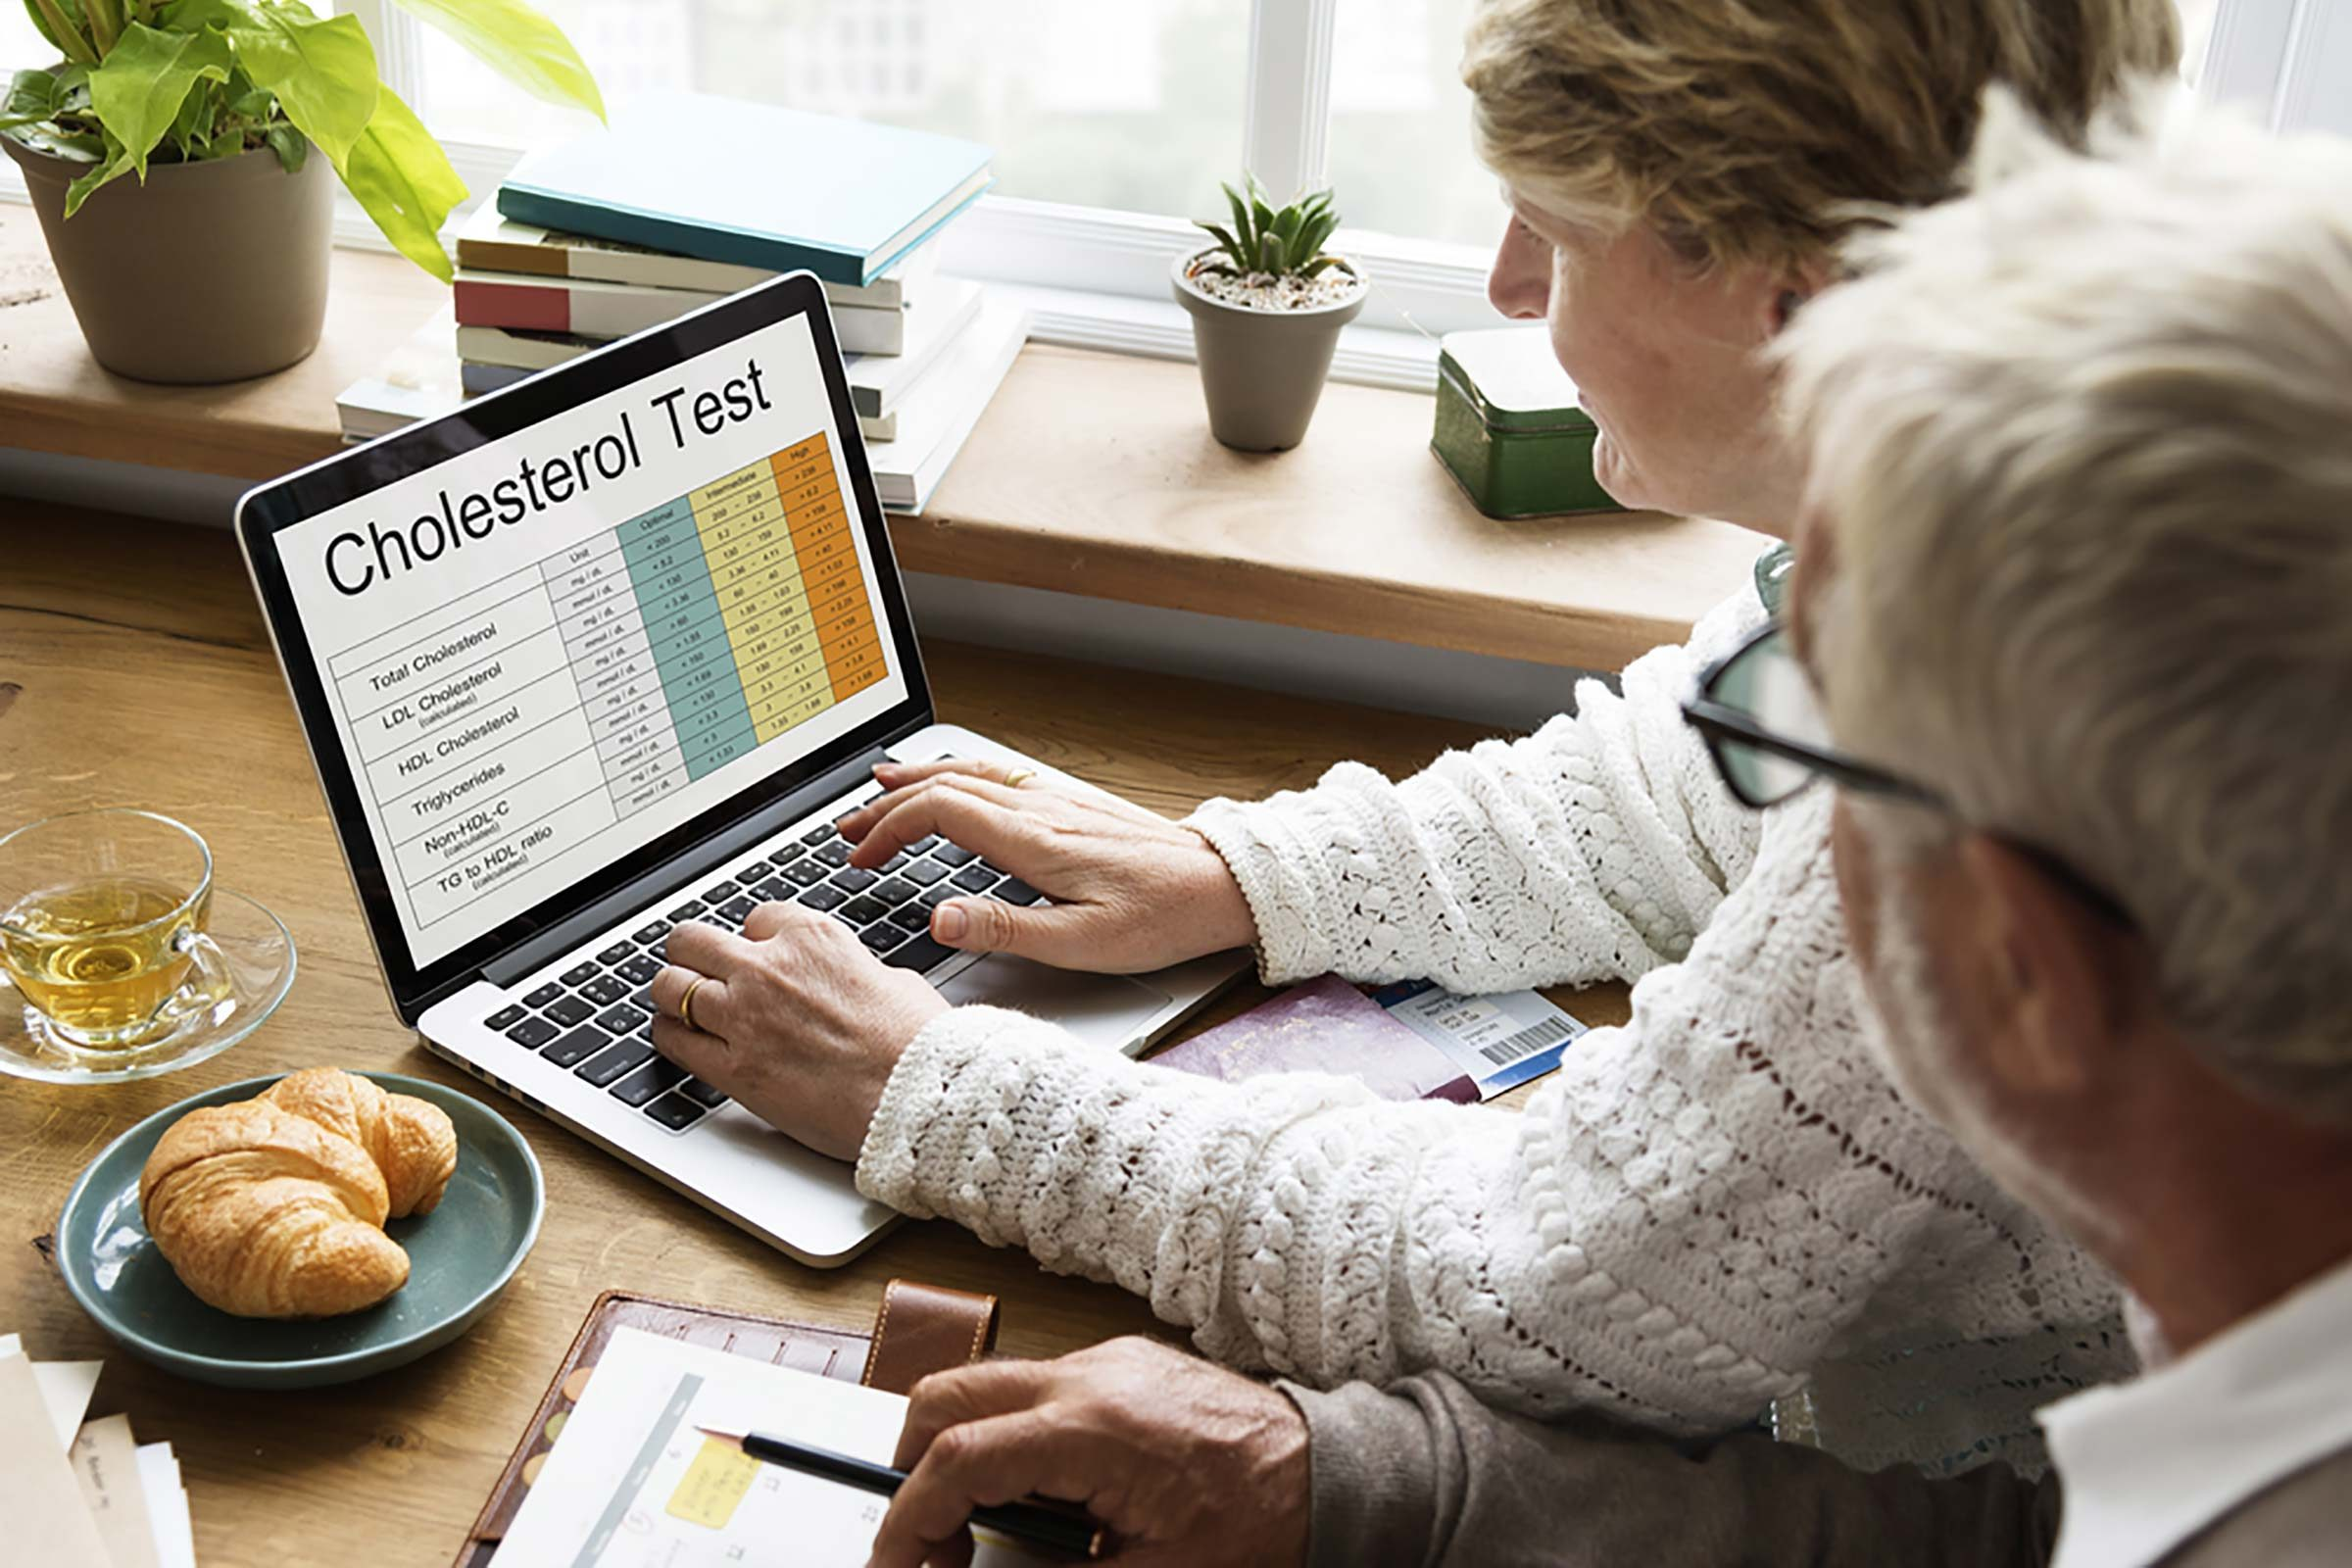 woman and man looking at cholesterol test results on a laptop